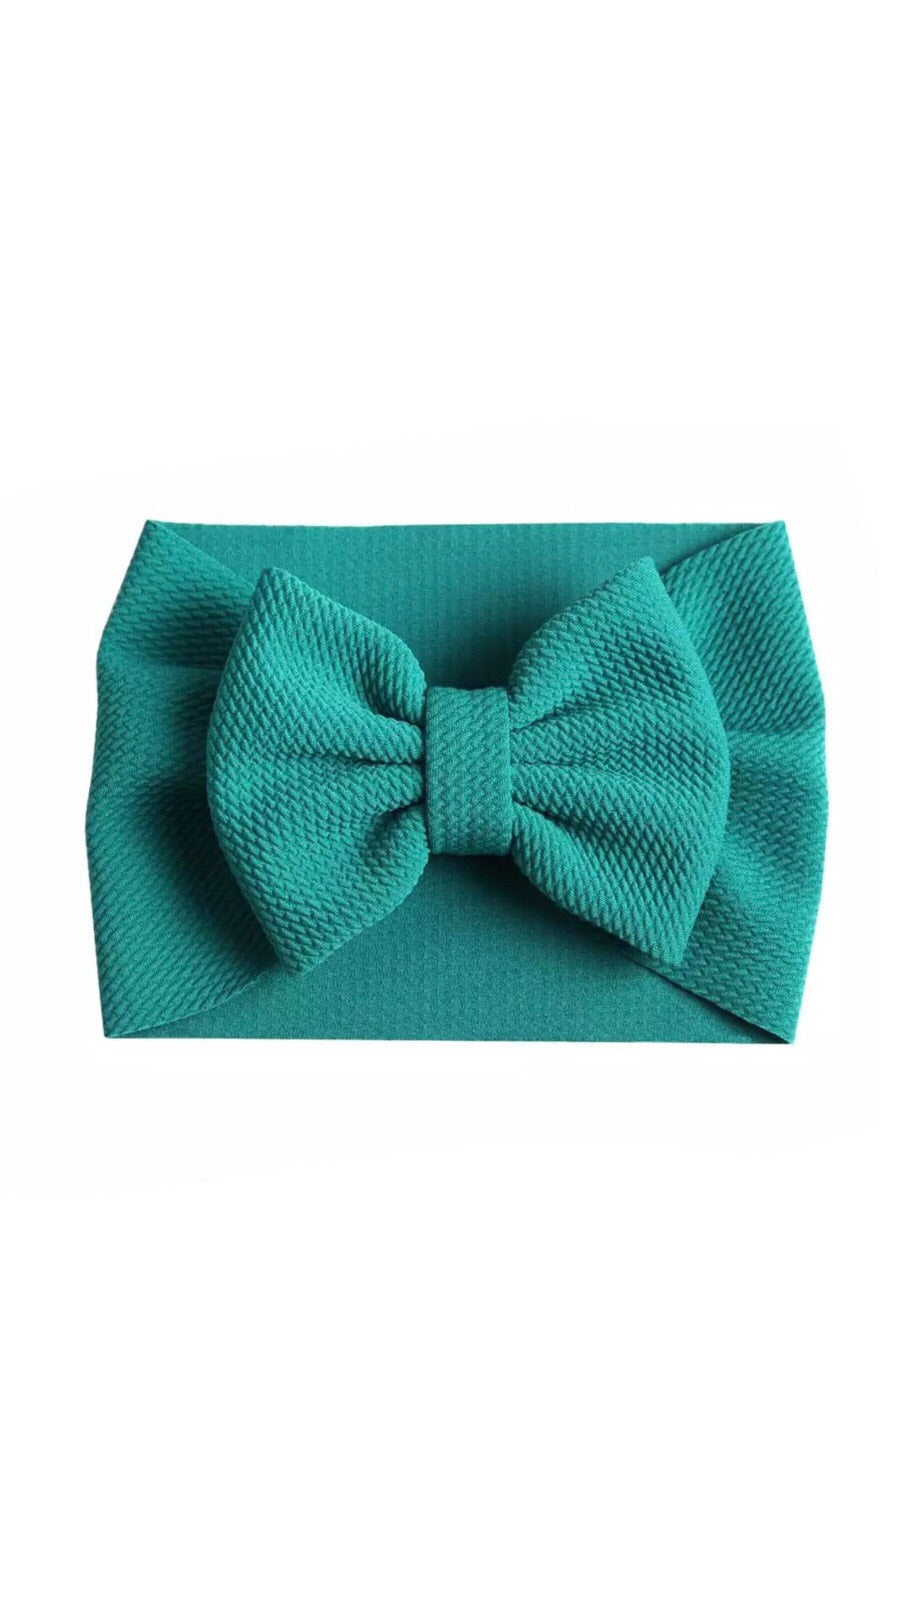 The Perfect Big Bow - 21 Colors